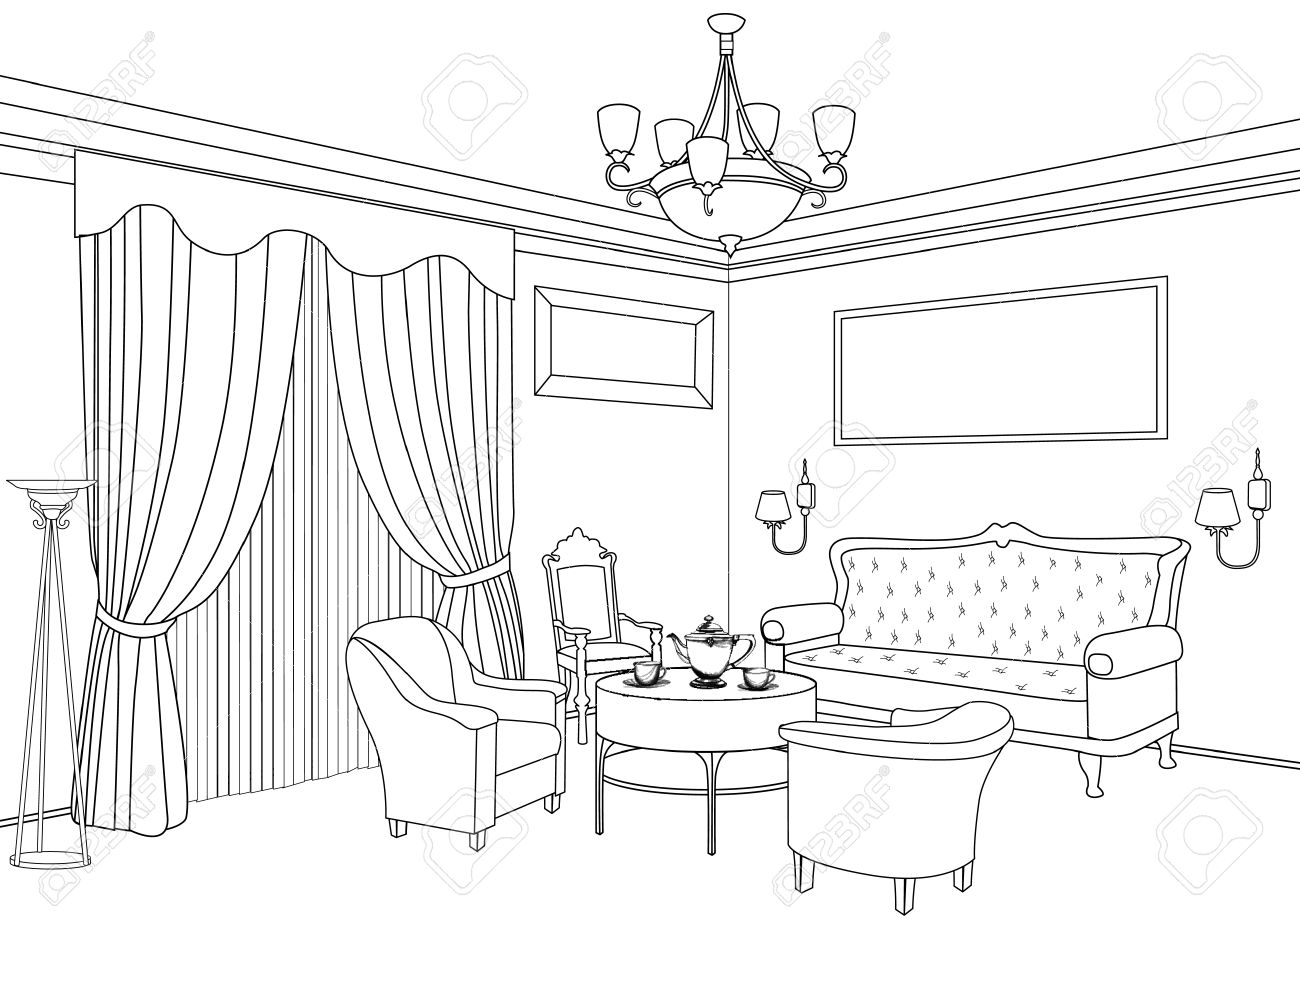 Interior Outline Sketch. Furniture Blueprint. Architectural Design. Living  Room Stock Vector   33560763